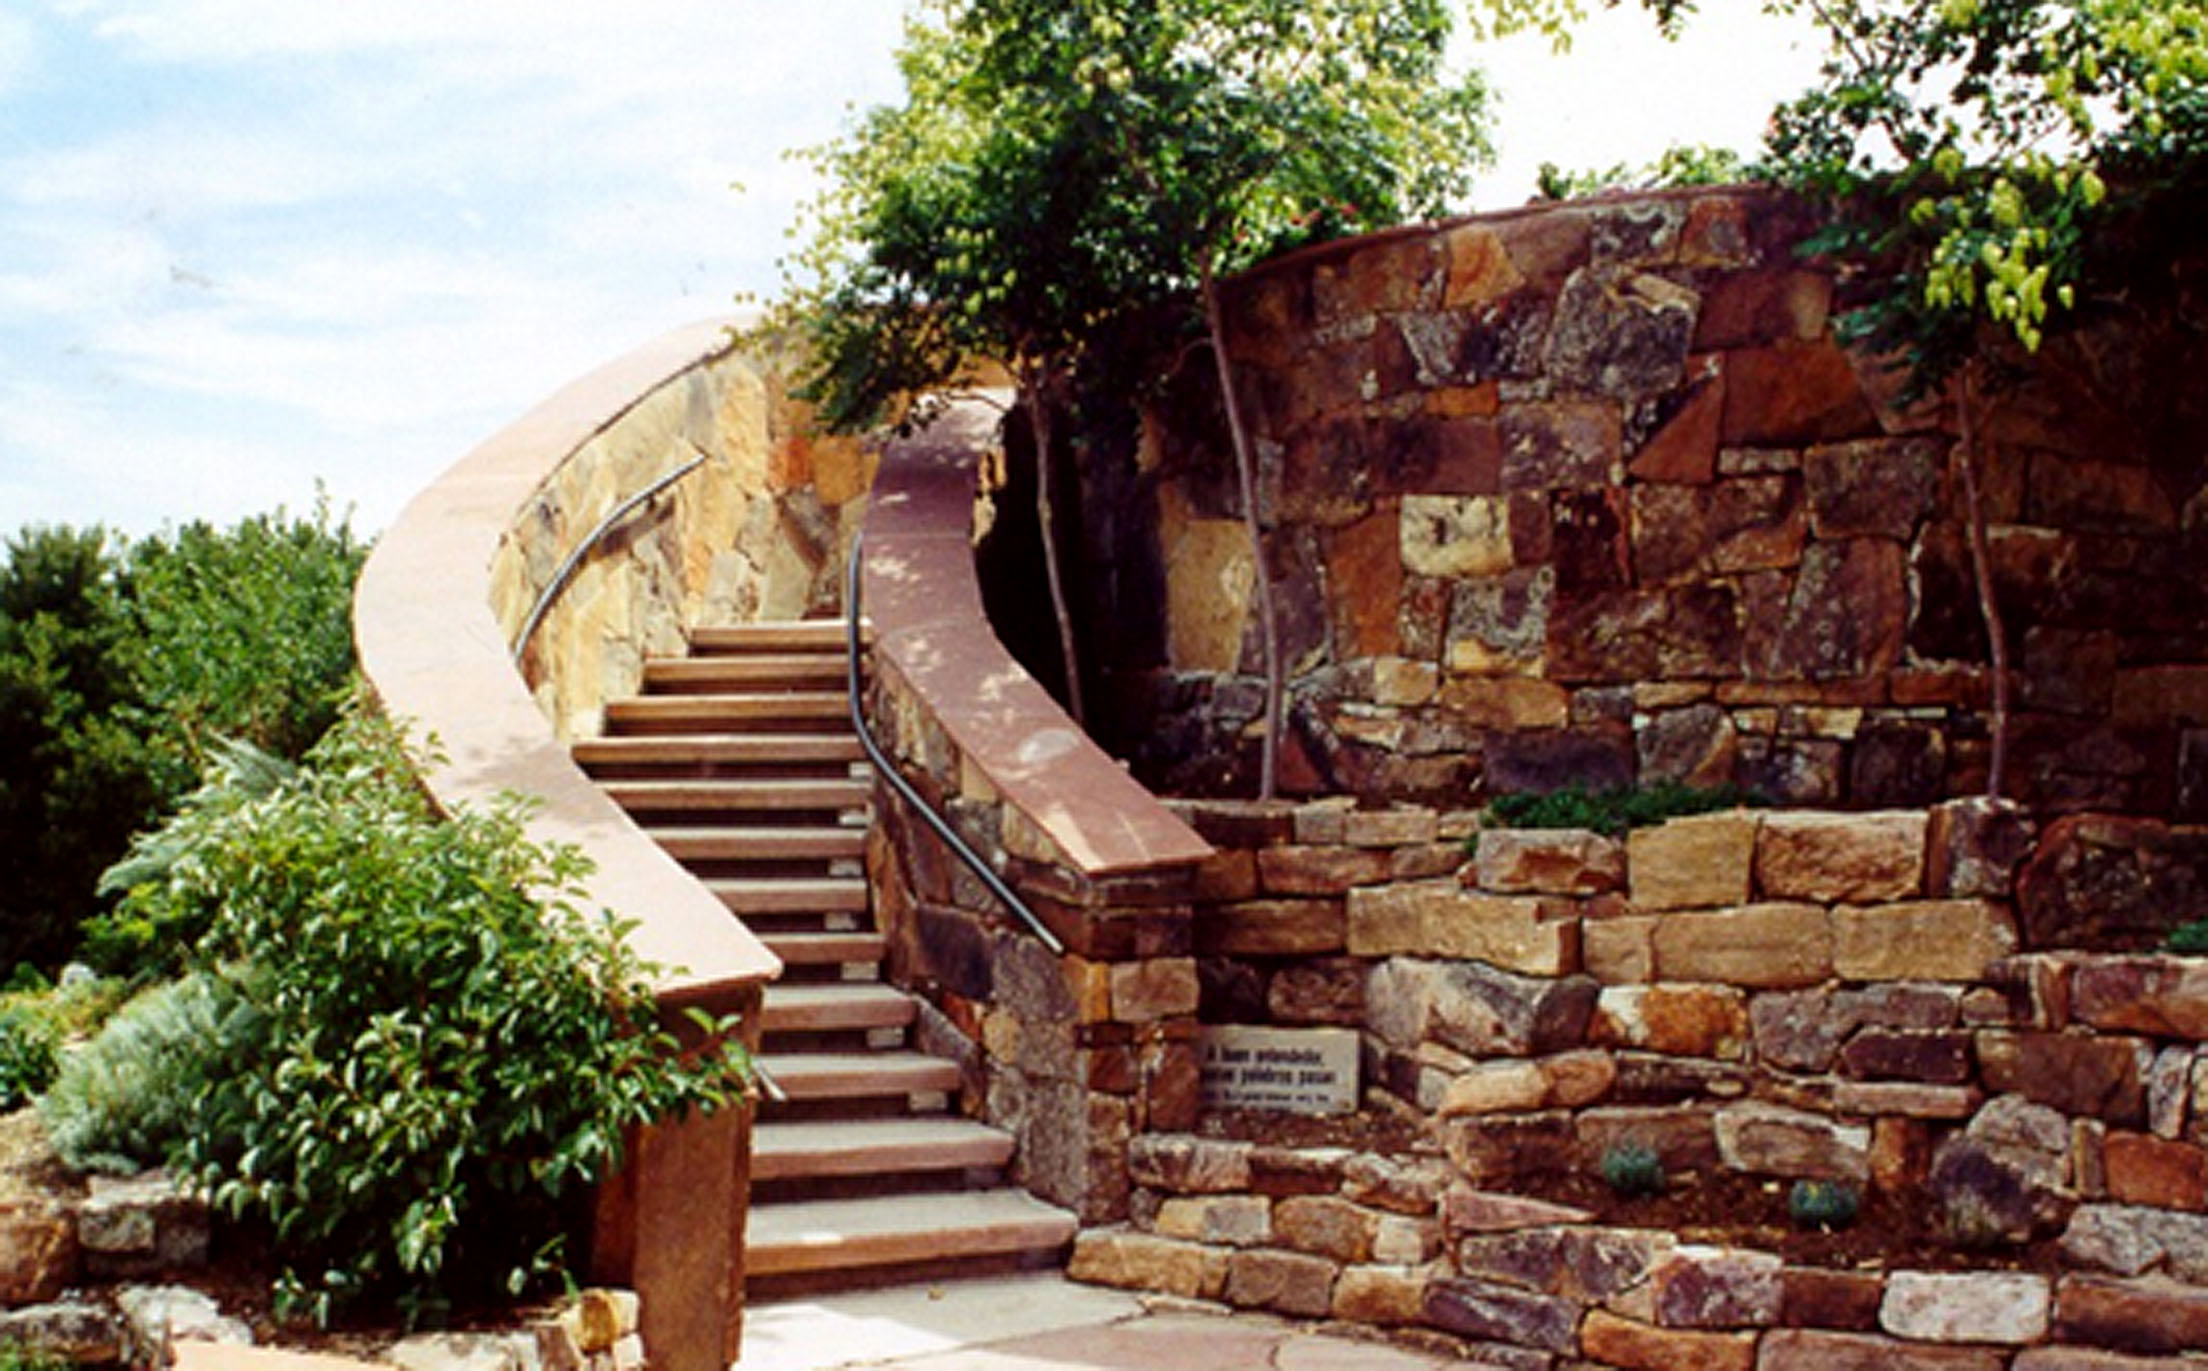 Patients will graduate to the beautiful stone-sided staircase